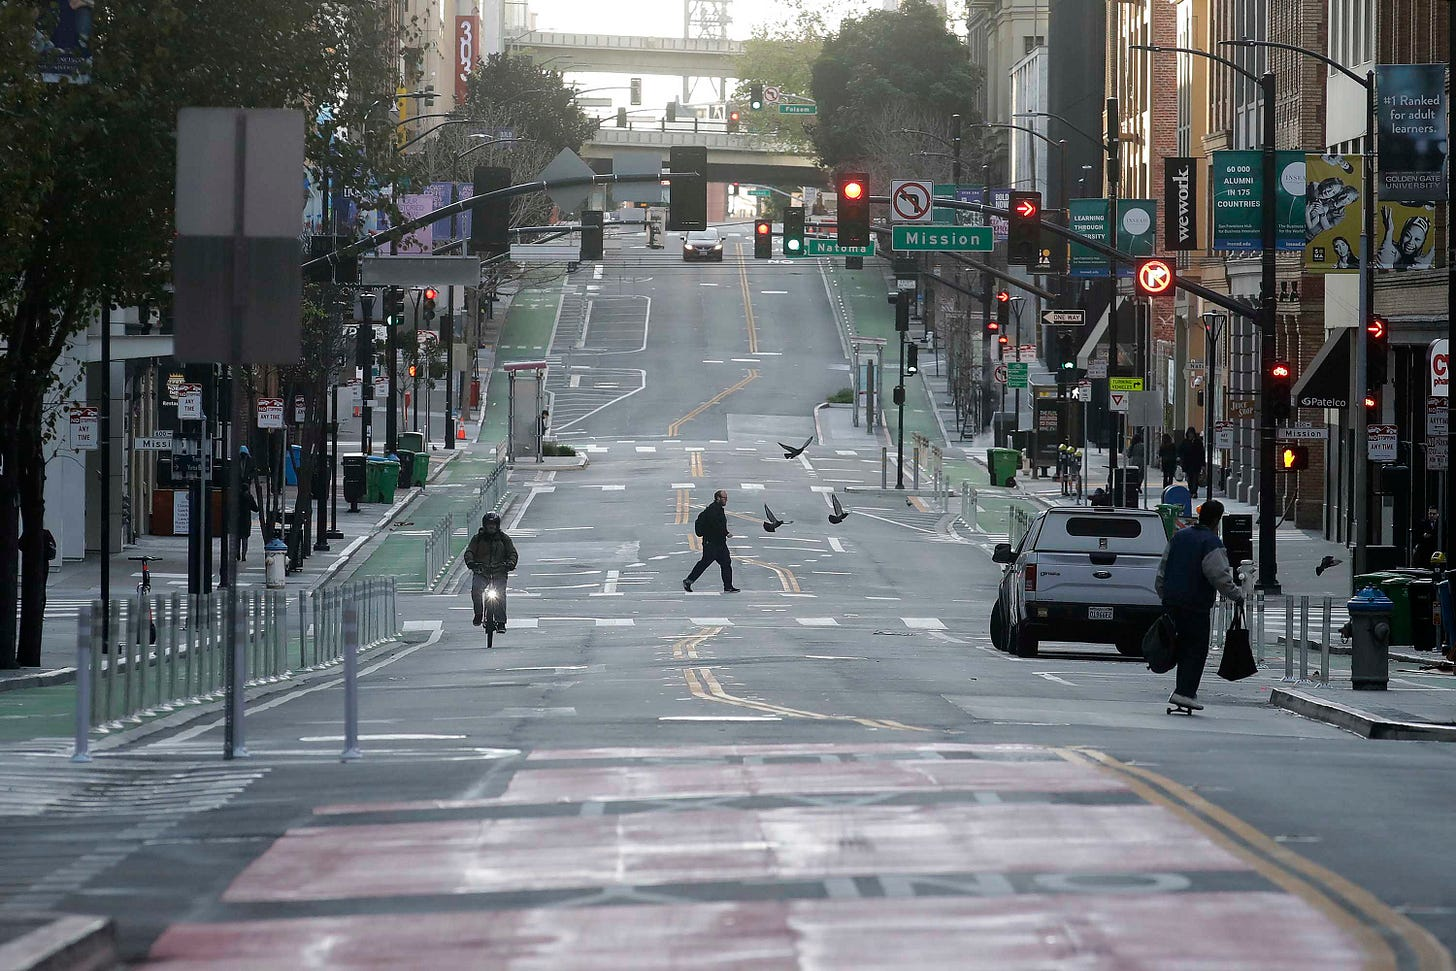 Streets empty as San Franciso ordered to shelter in place - CNN Video